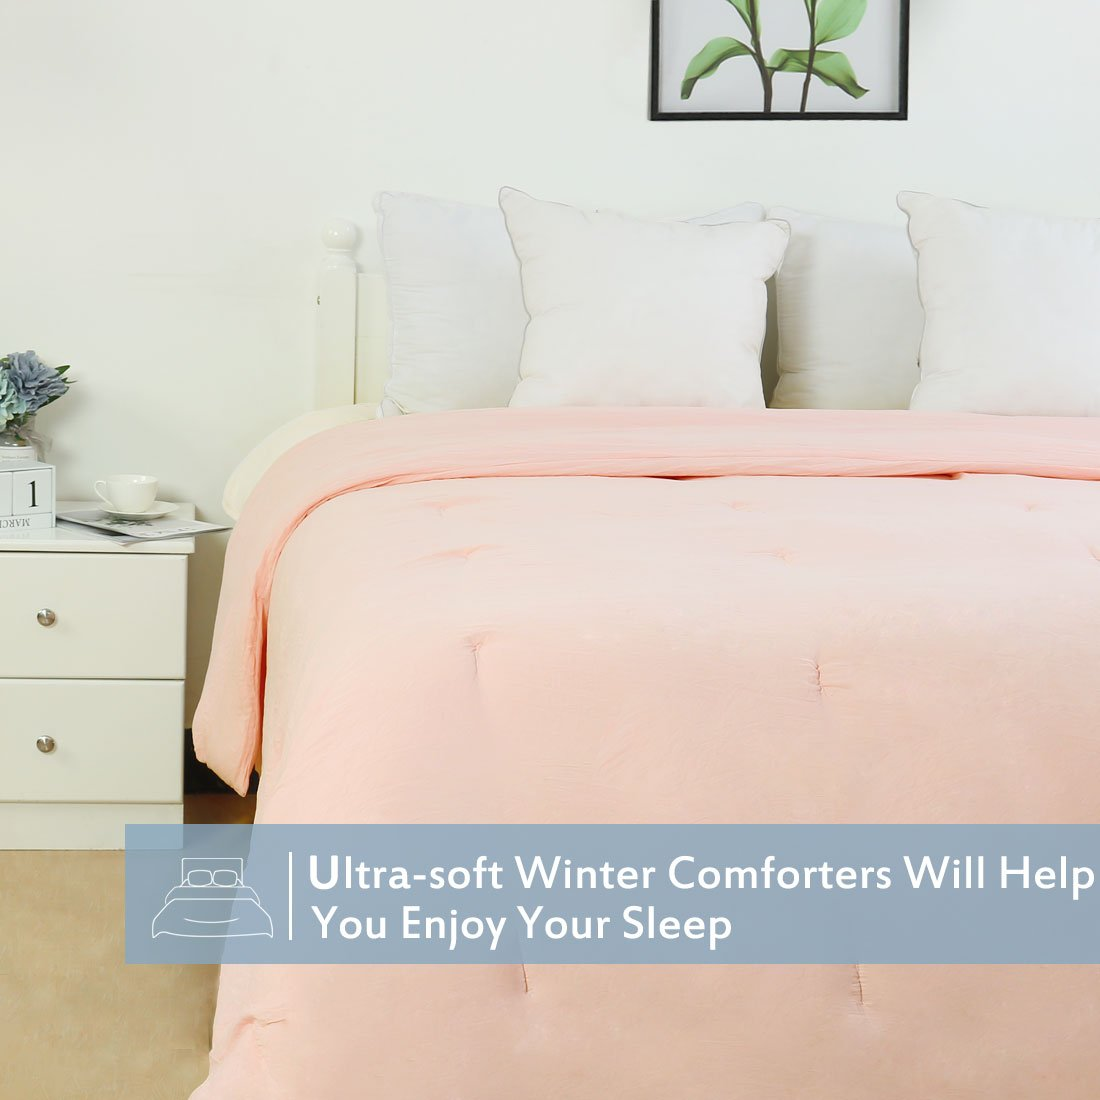 uxcell Quilted All-Season Comforter Duvet Insert Polyester Fill 240GSM Comfortable Wrinkle Fade Resistant Breathable Twin Light Green a18061200ux0366